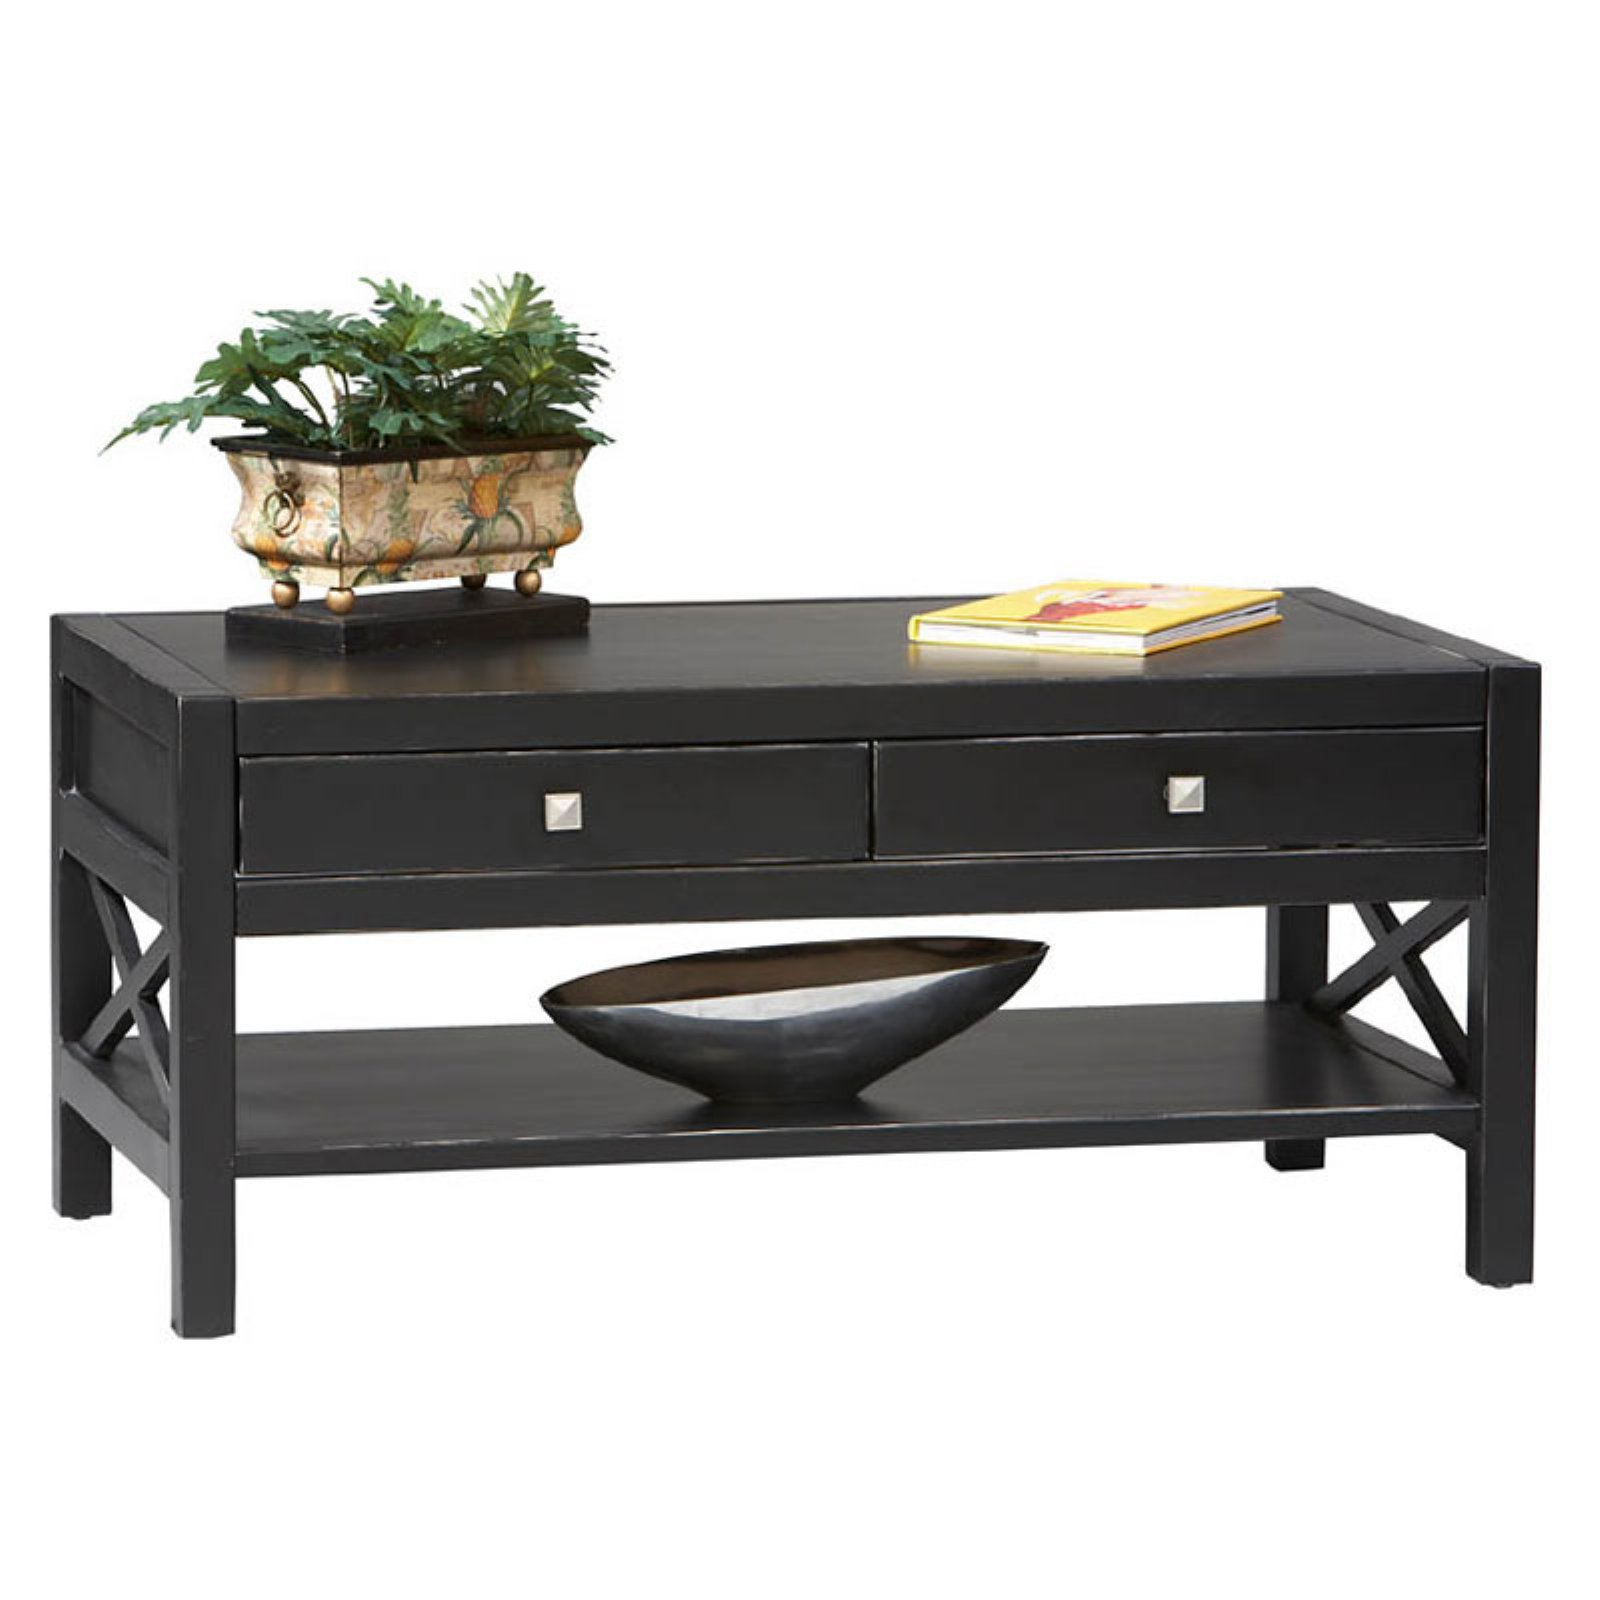 Linon Anna Collection Coffee Table in Antique Black by Linon